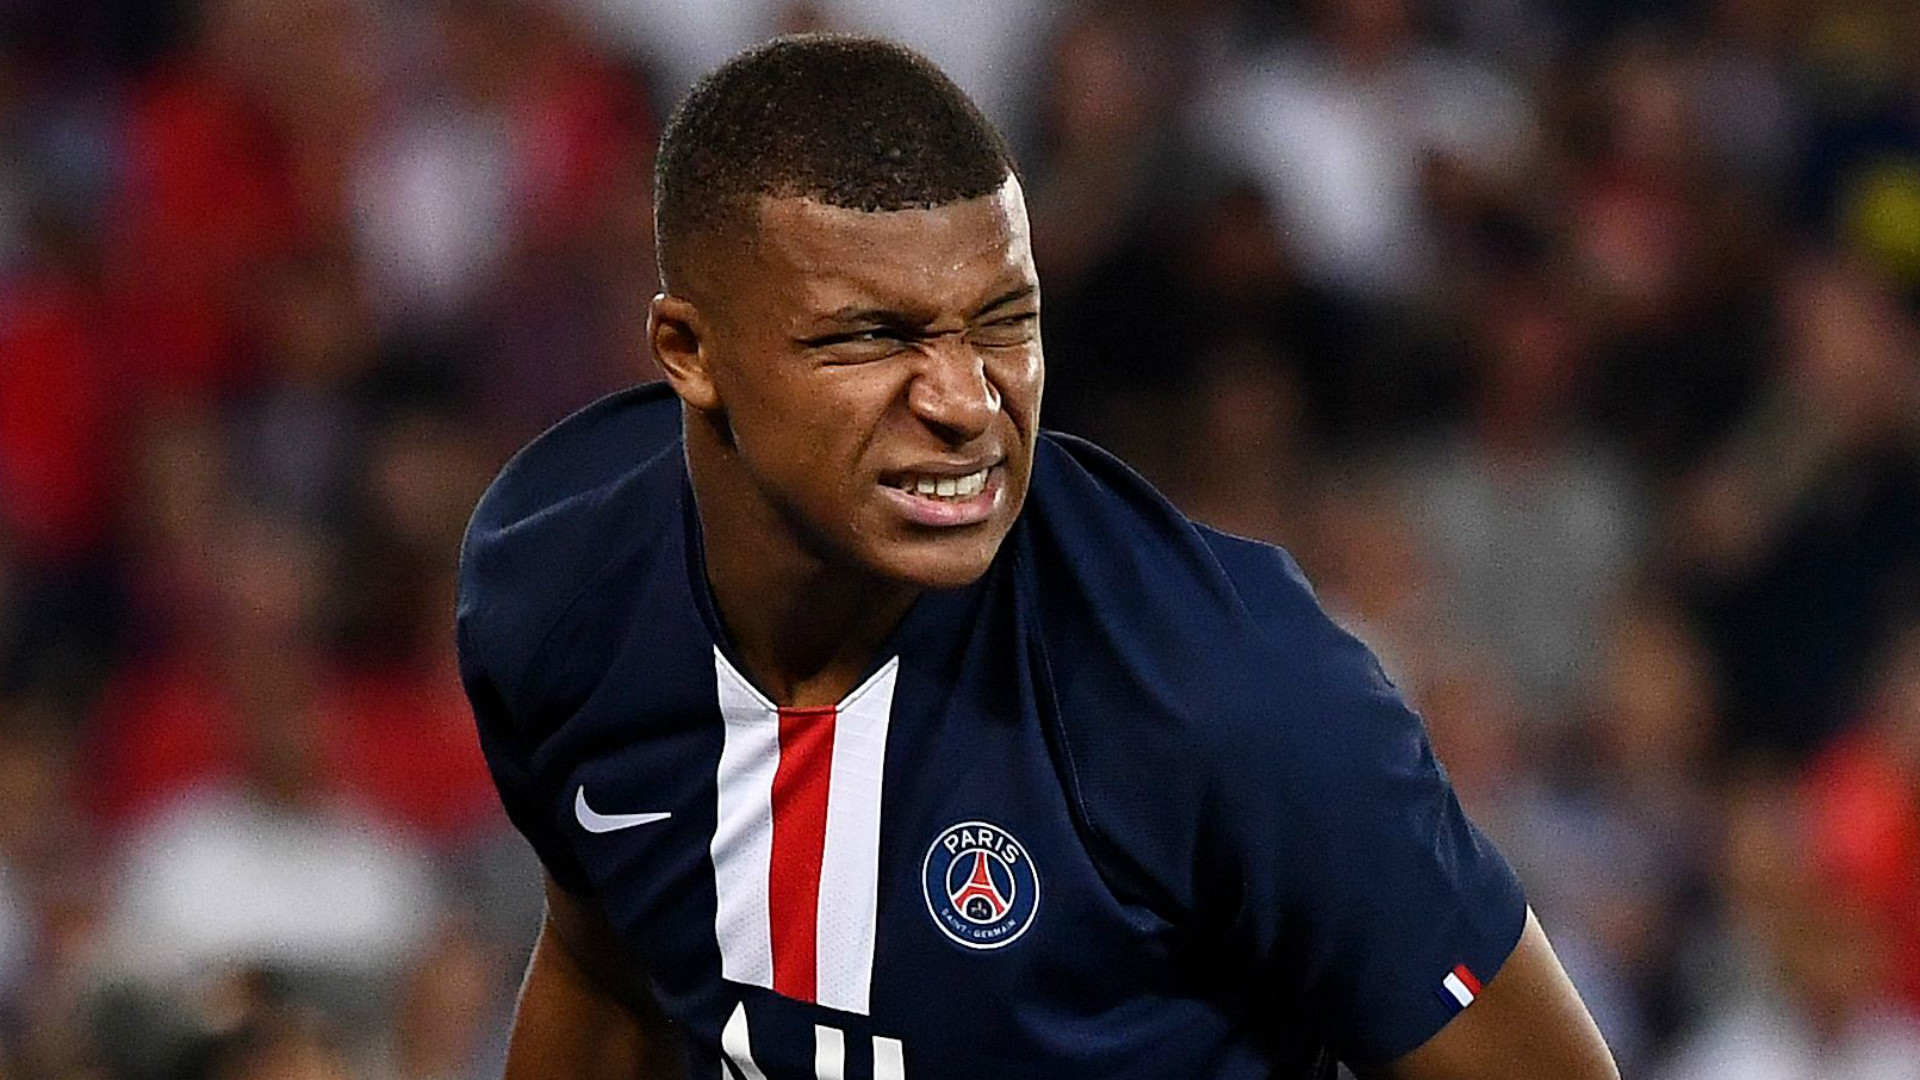 PSG Star Mbappe Has Twitter Account Hacked Sporting News